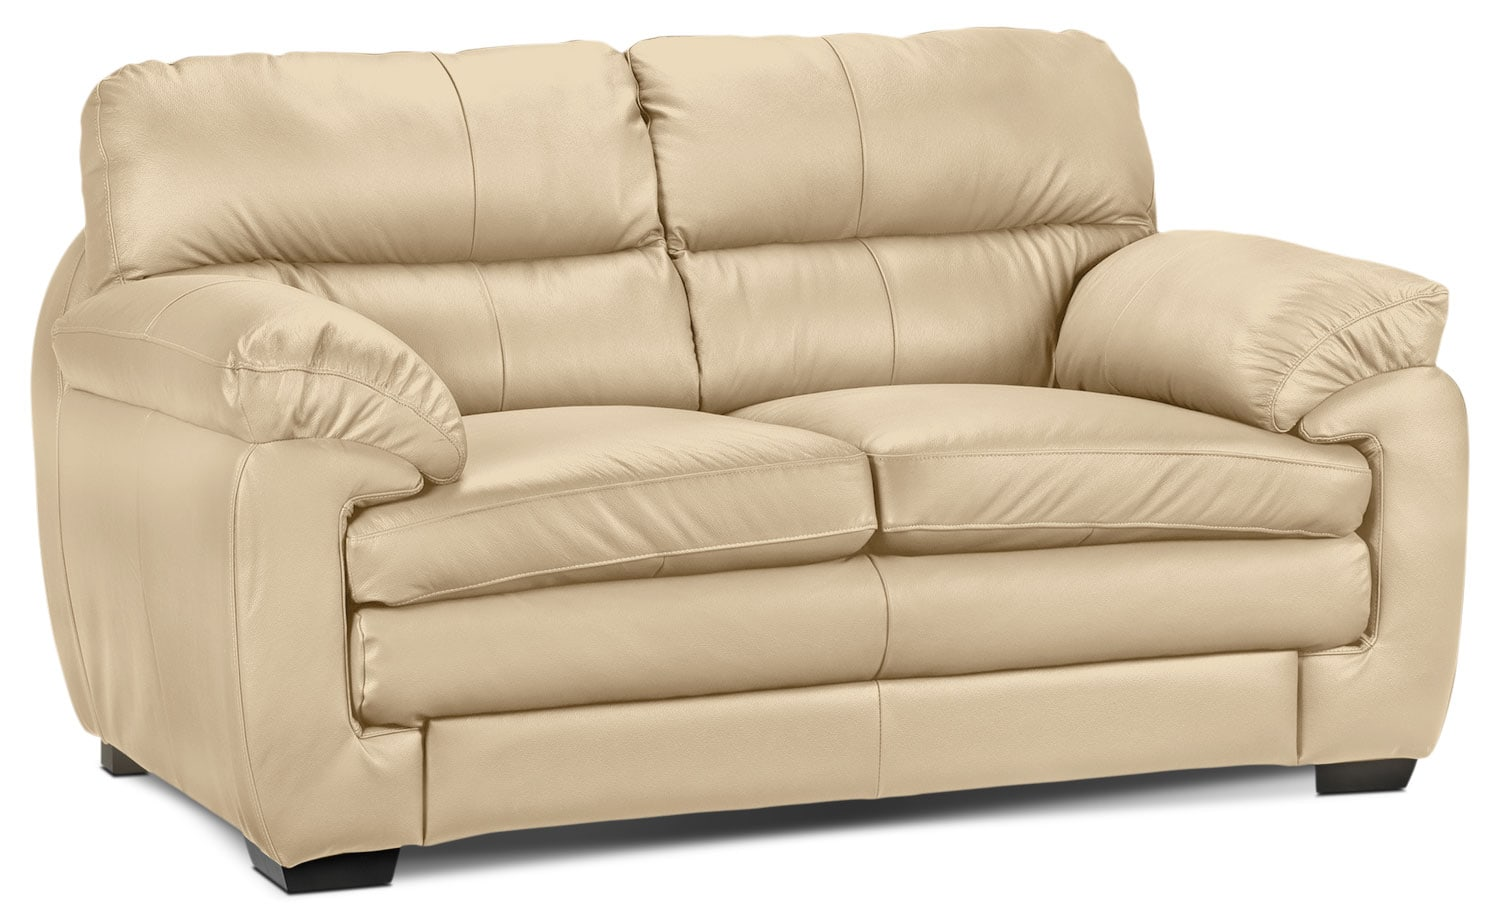 Living Room Furniture - Cambria Loveseat - Seashell